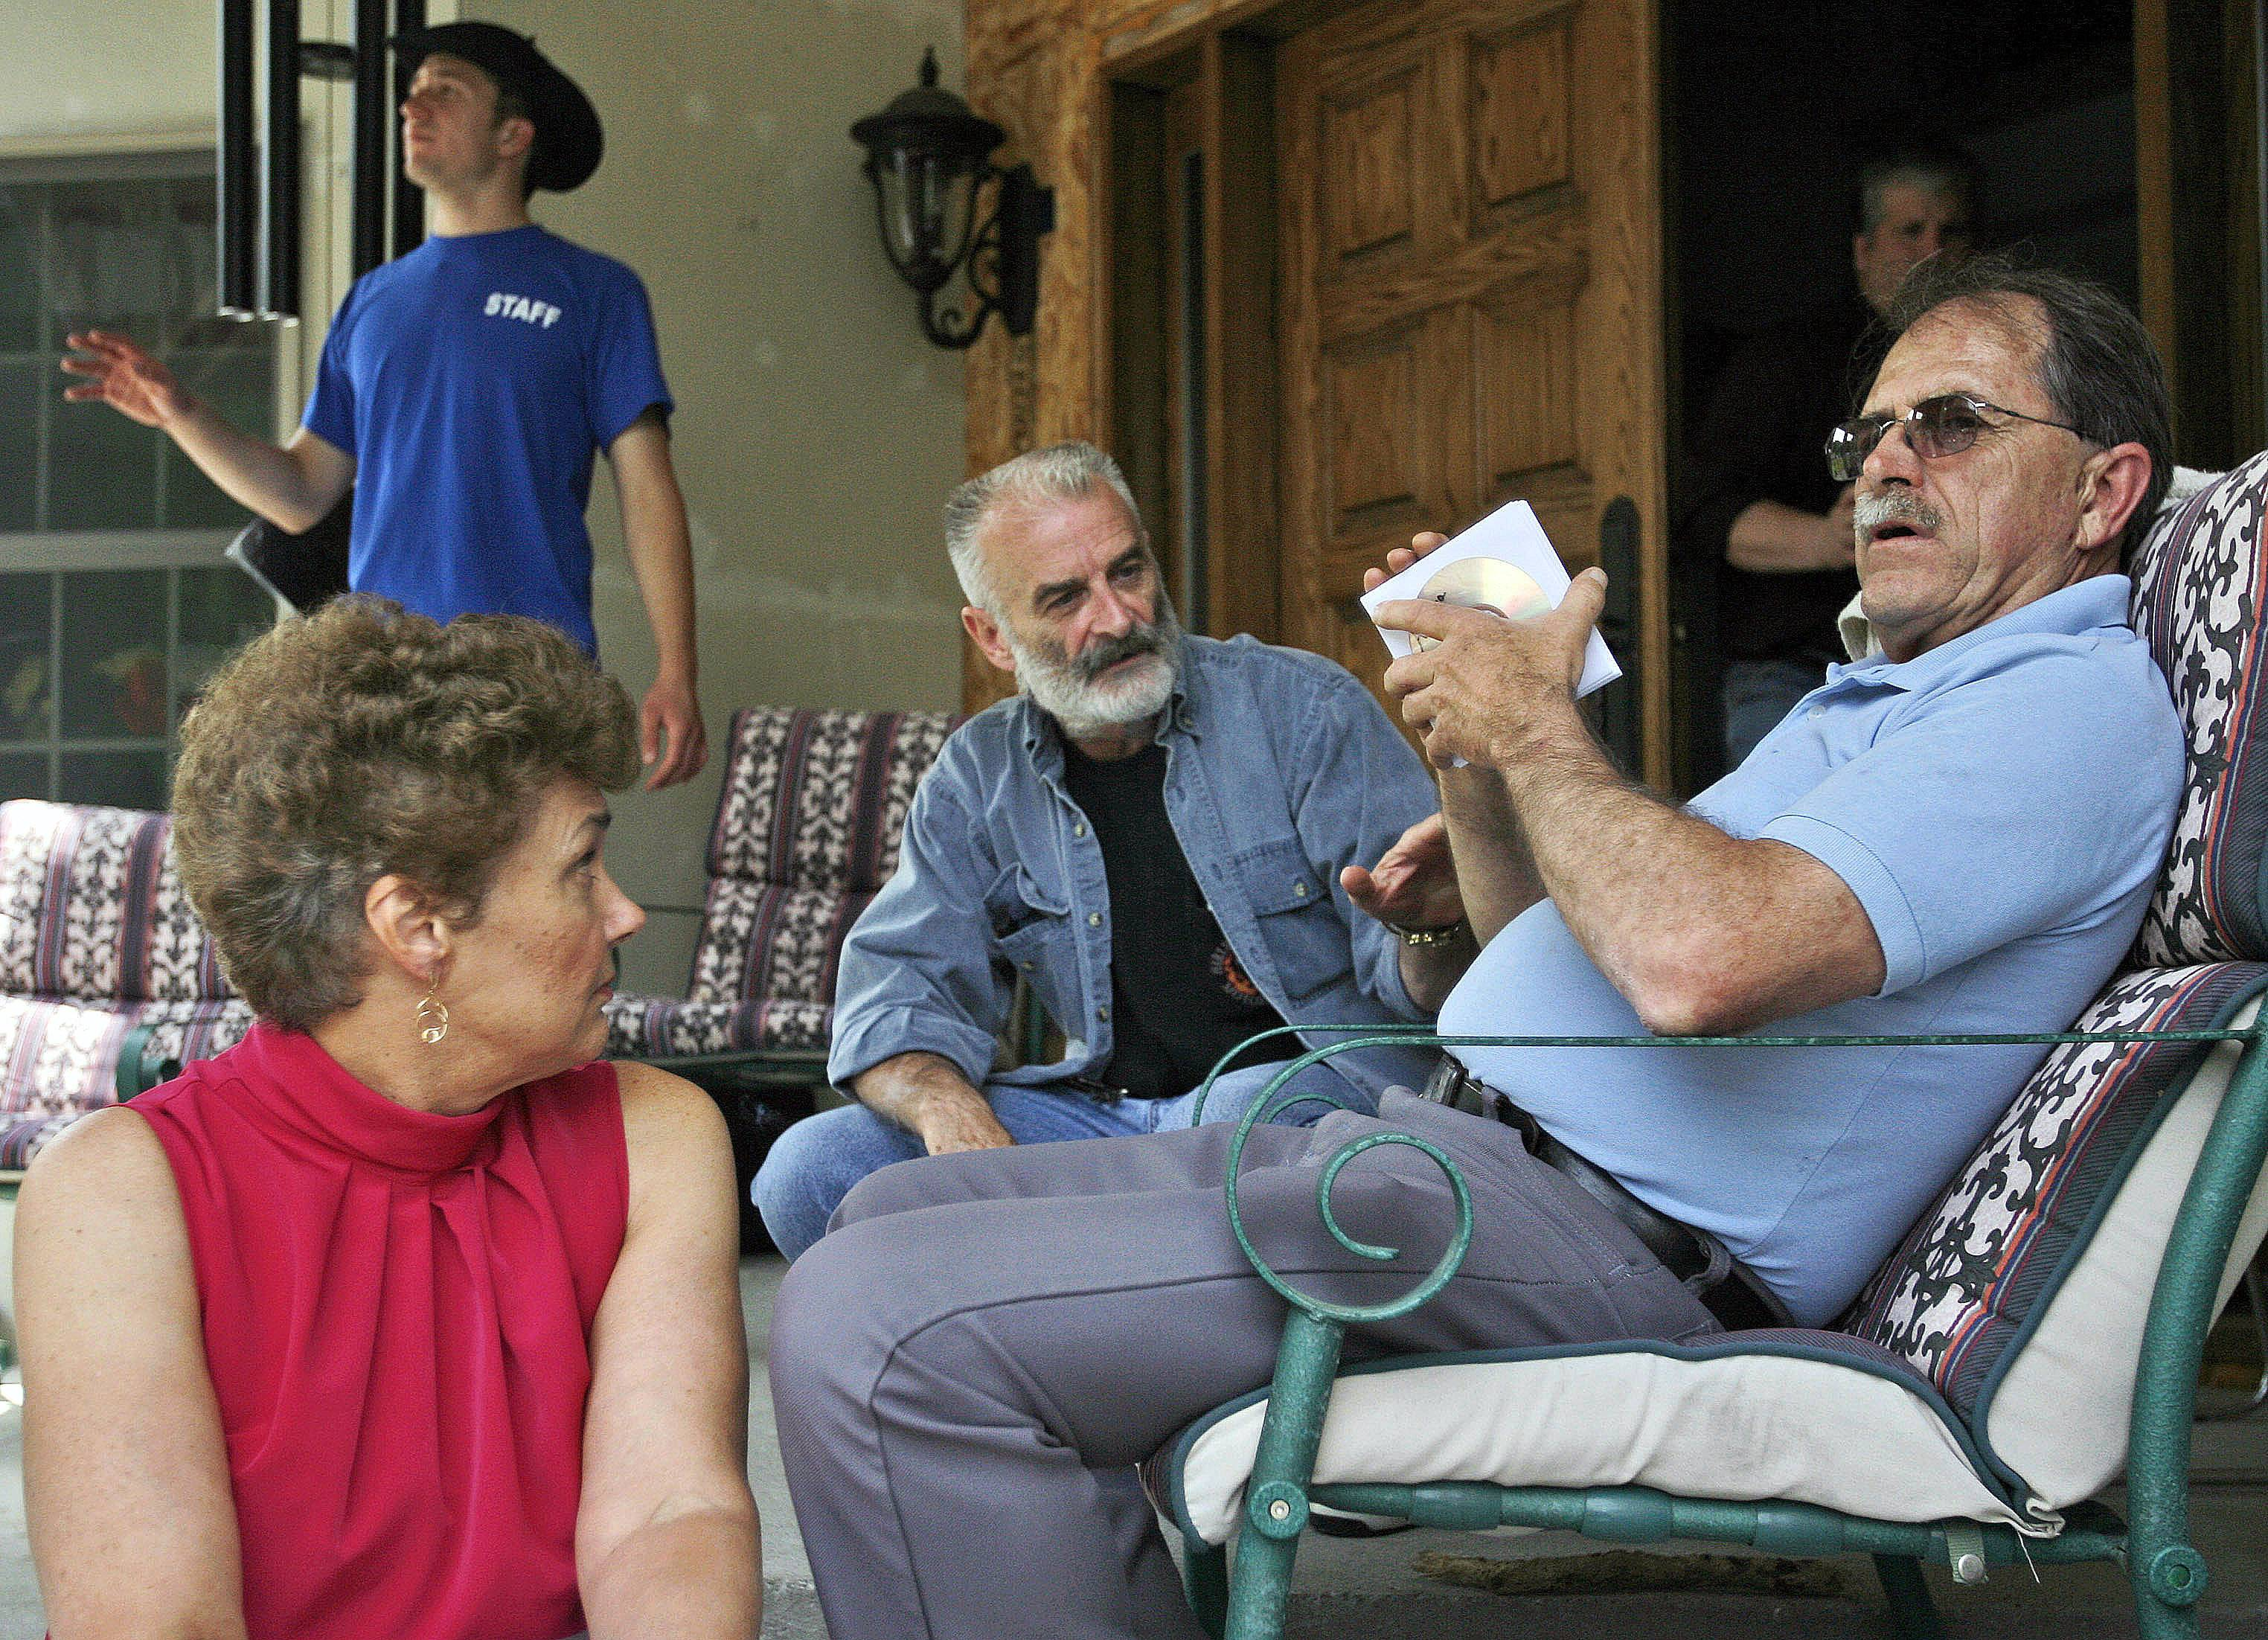 Ed Brown, right, and his wife Elaine Brown listen to Ruby Ridge survivor Randy Weaver, center, at their home in in Plainfield, N.H. The tax-evading couple are serving lengthy sentences after being convicted of amassing an arsenal of weapons and holding law enforcement at bay for nine months in 2007.